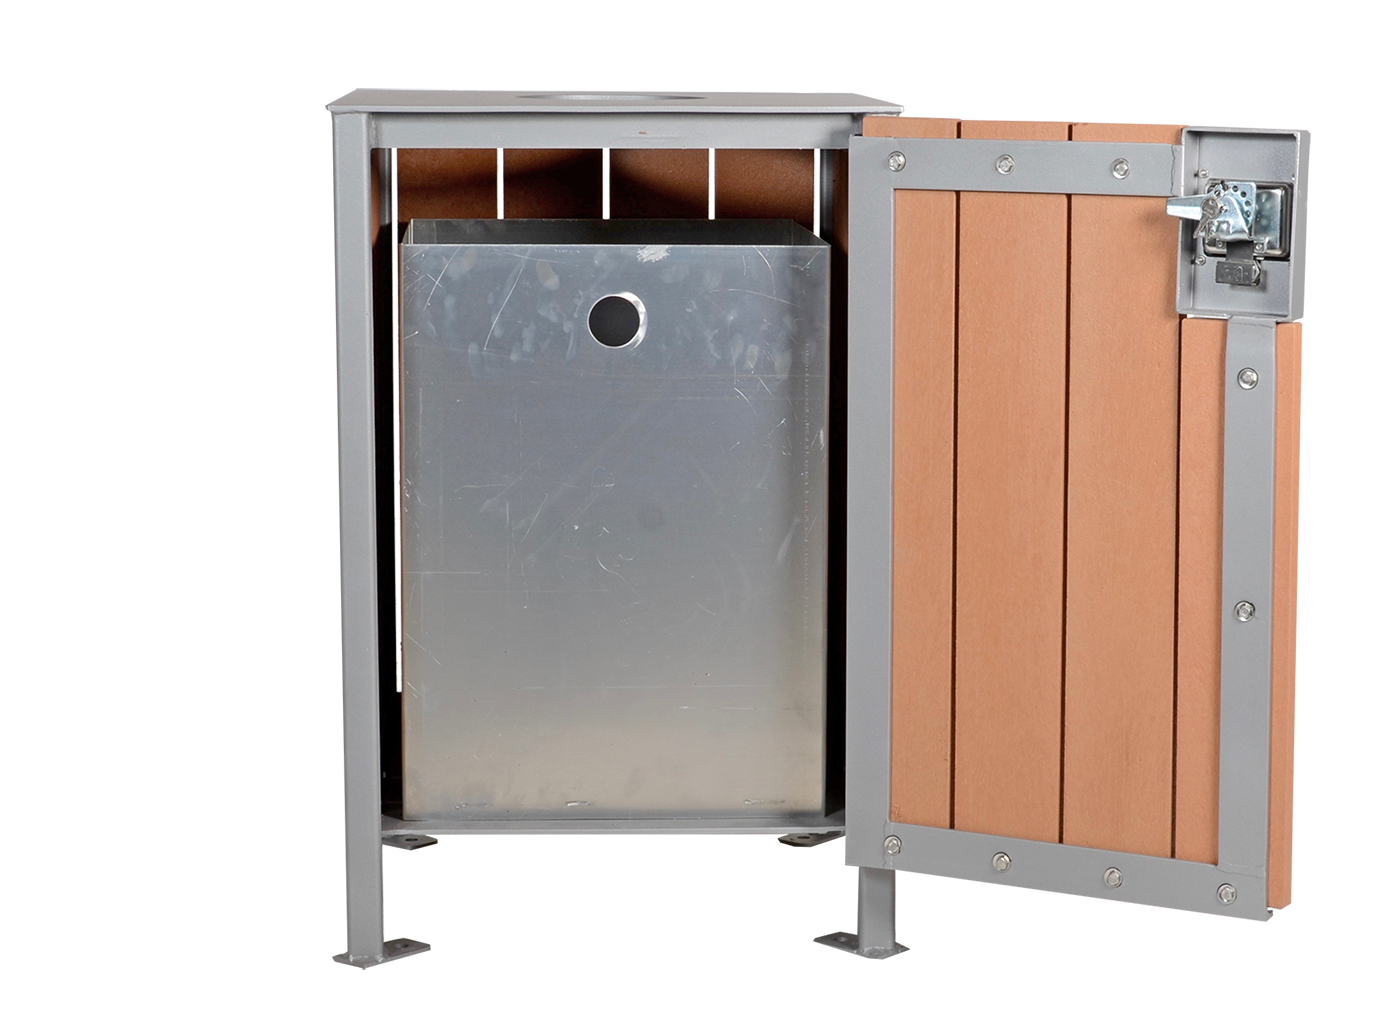 Witt Industries Confidential Waste Receptacle With Lock And Key Almond 765152149 P in addition 6 In 1 Infection Control Kiosk besides 77 further Modena Square Top Waste Receptacle additionally S 1025258. on lockable trash receptacle